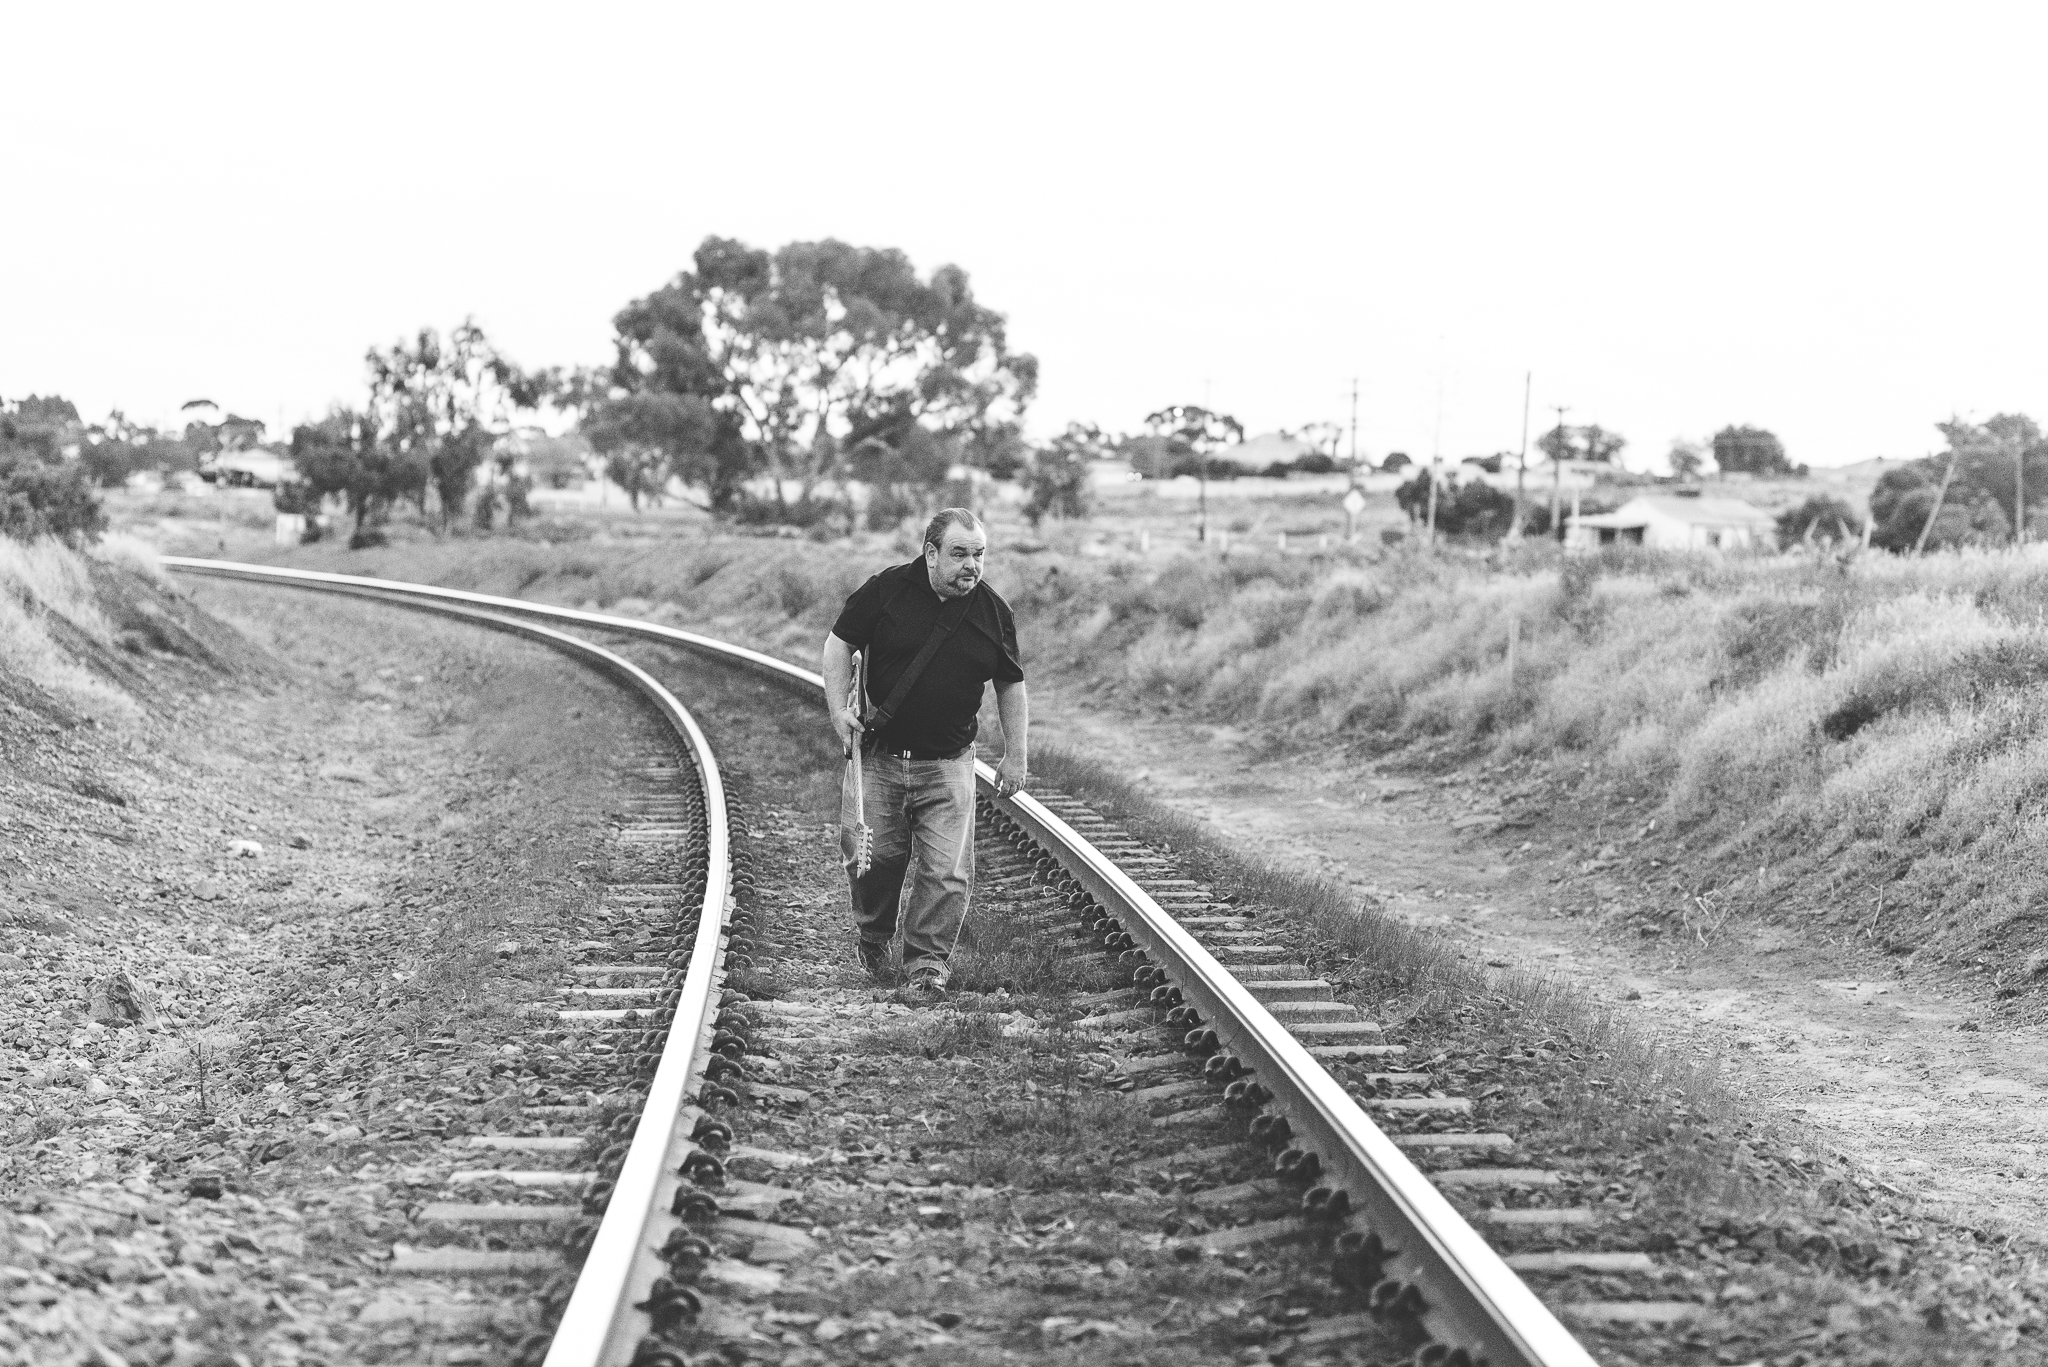 Sullie on the railway tracks.